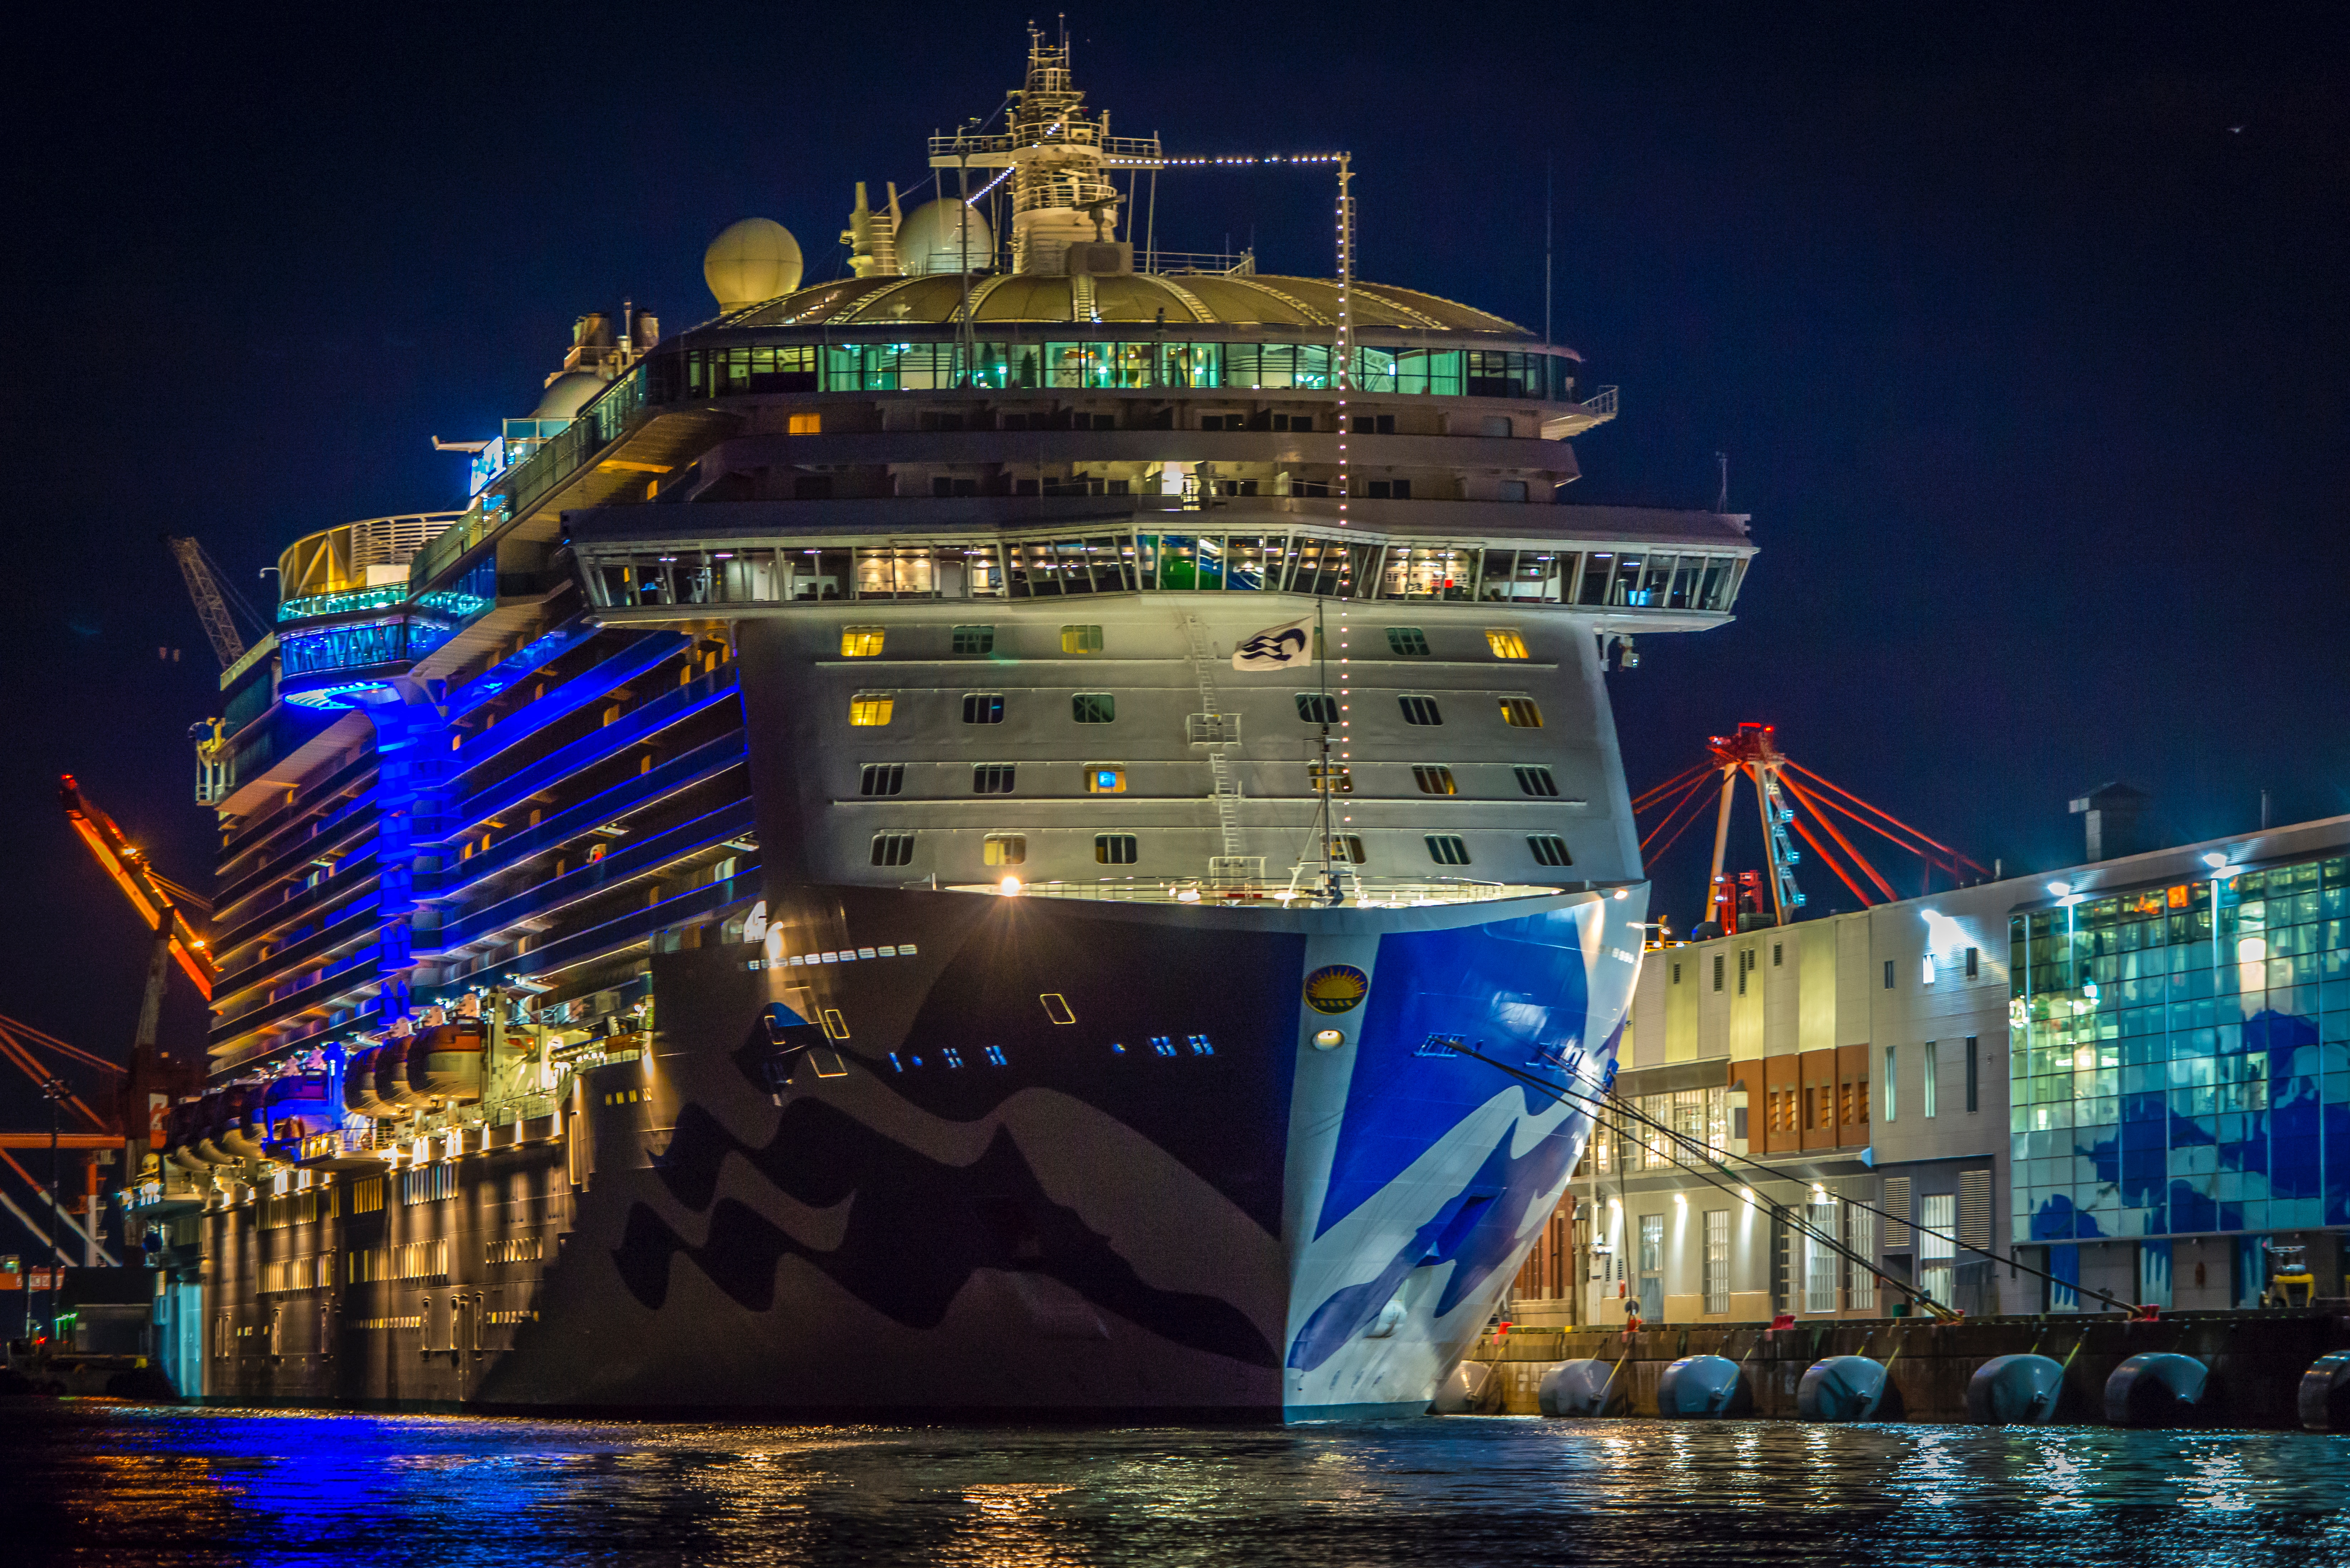 How to communicate aboard royal Caribbean